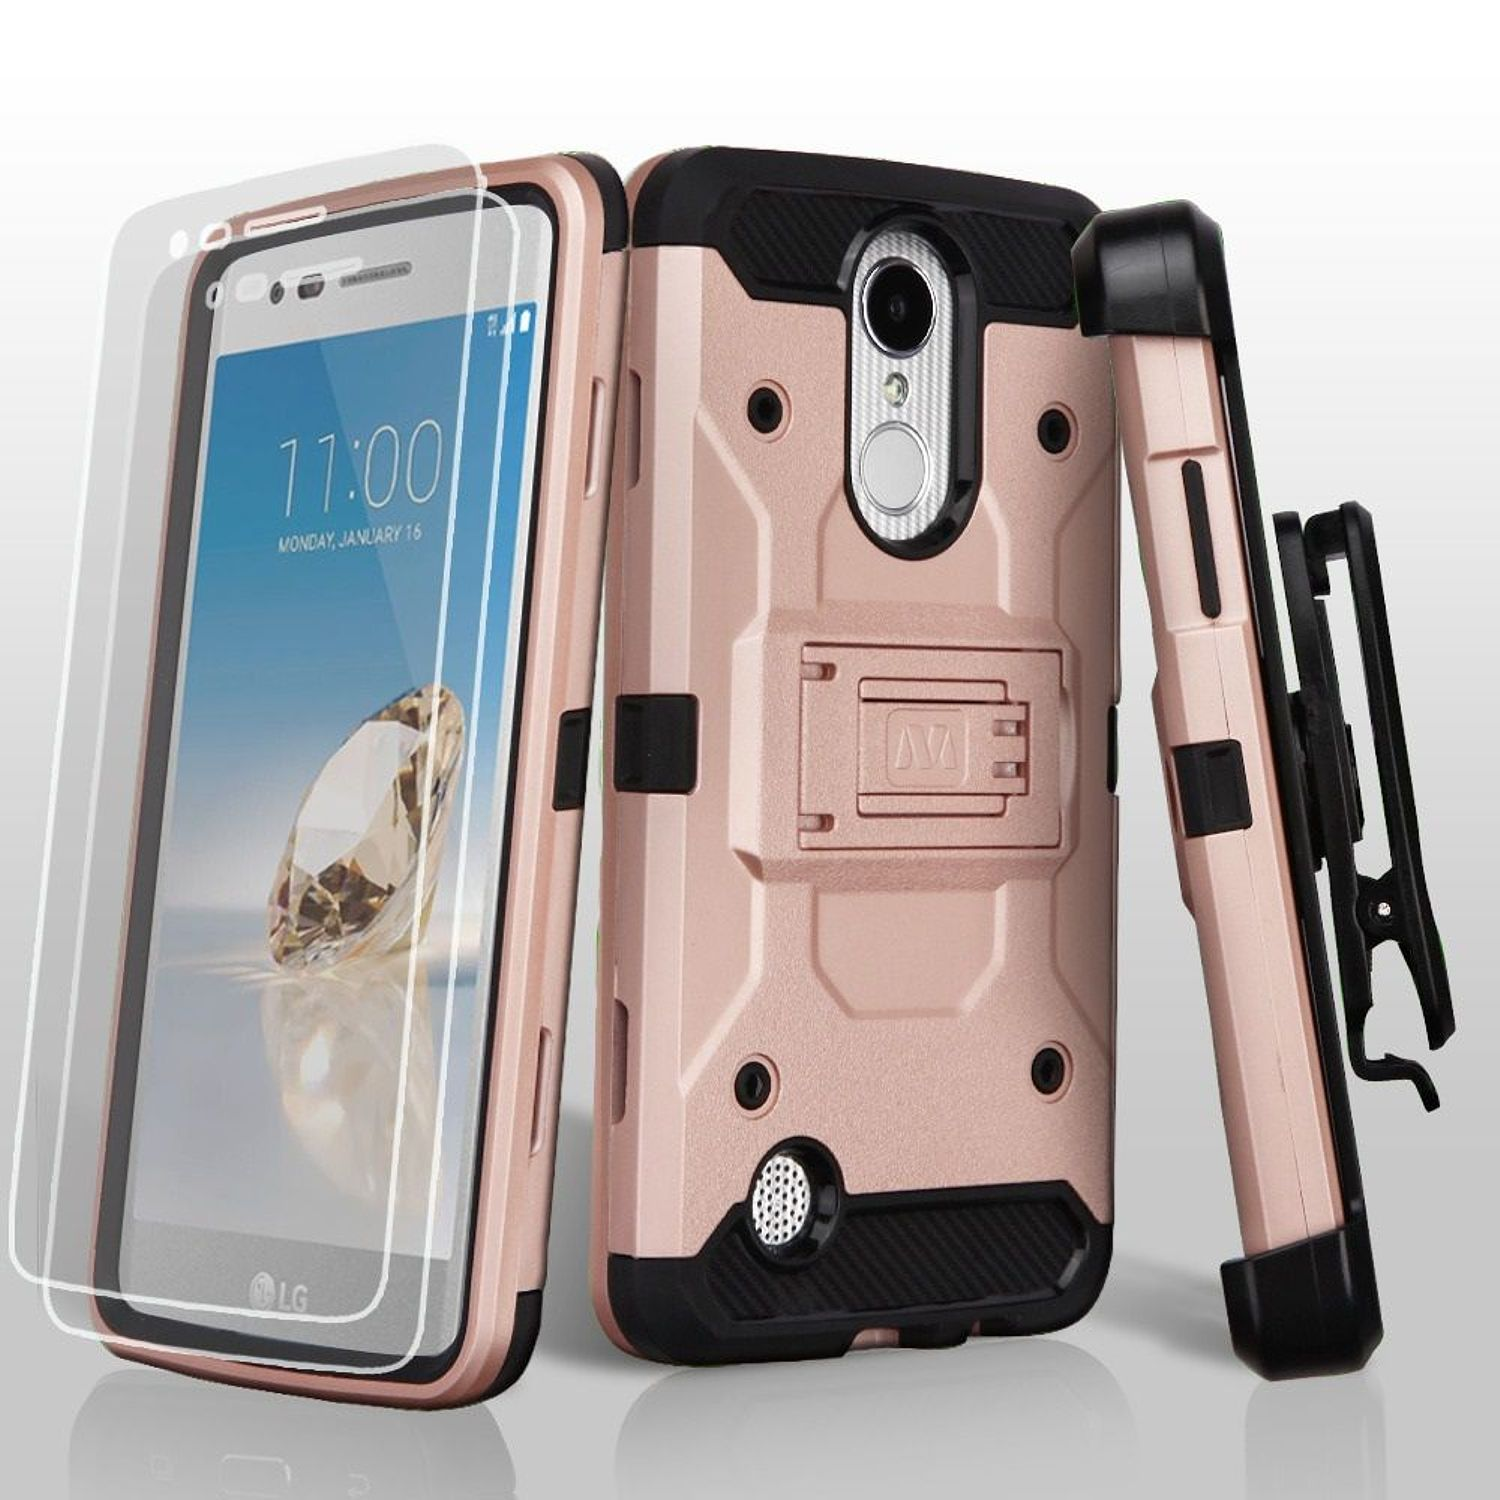 LG Aristo phone case, LG K8 2017 phone case, LG K4 2017 phone case, by Insten Dual Layer [Shock Absorbing] Hybrid Hard/Soft TPU Case Bundled For LG Aristo/Fortune/K4 (2017)/K8 (2017)/LV3/Phoenix 3